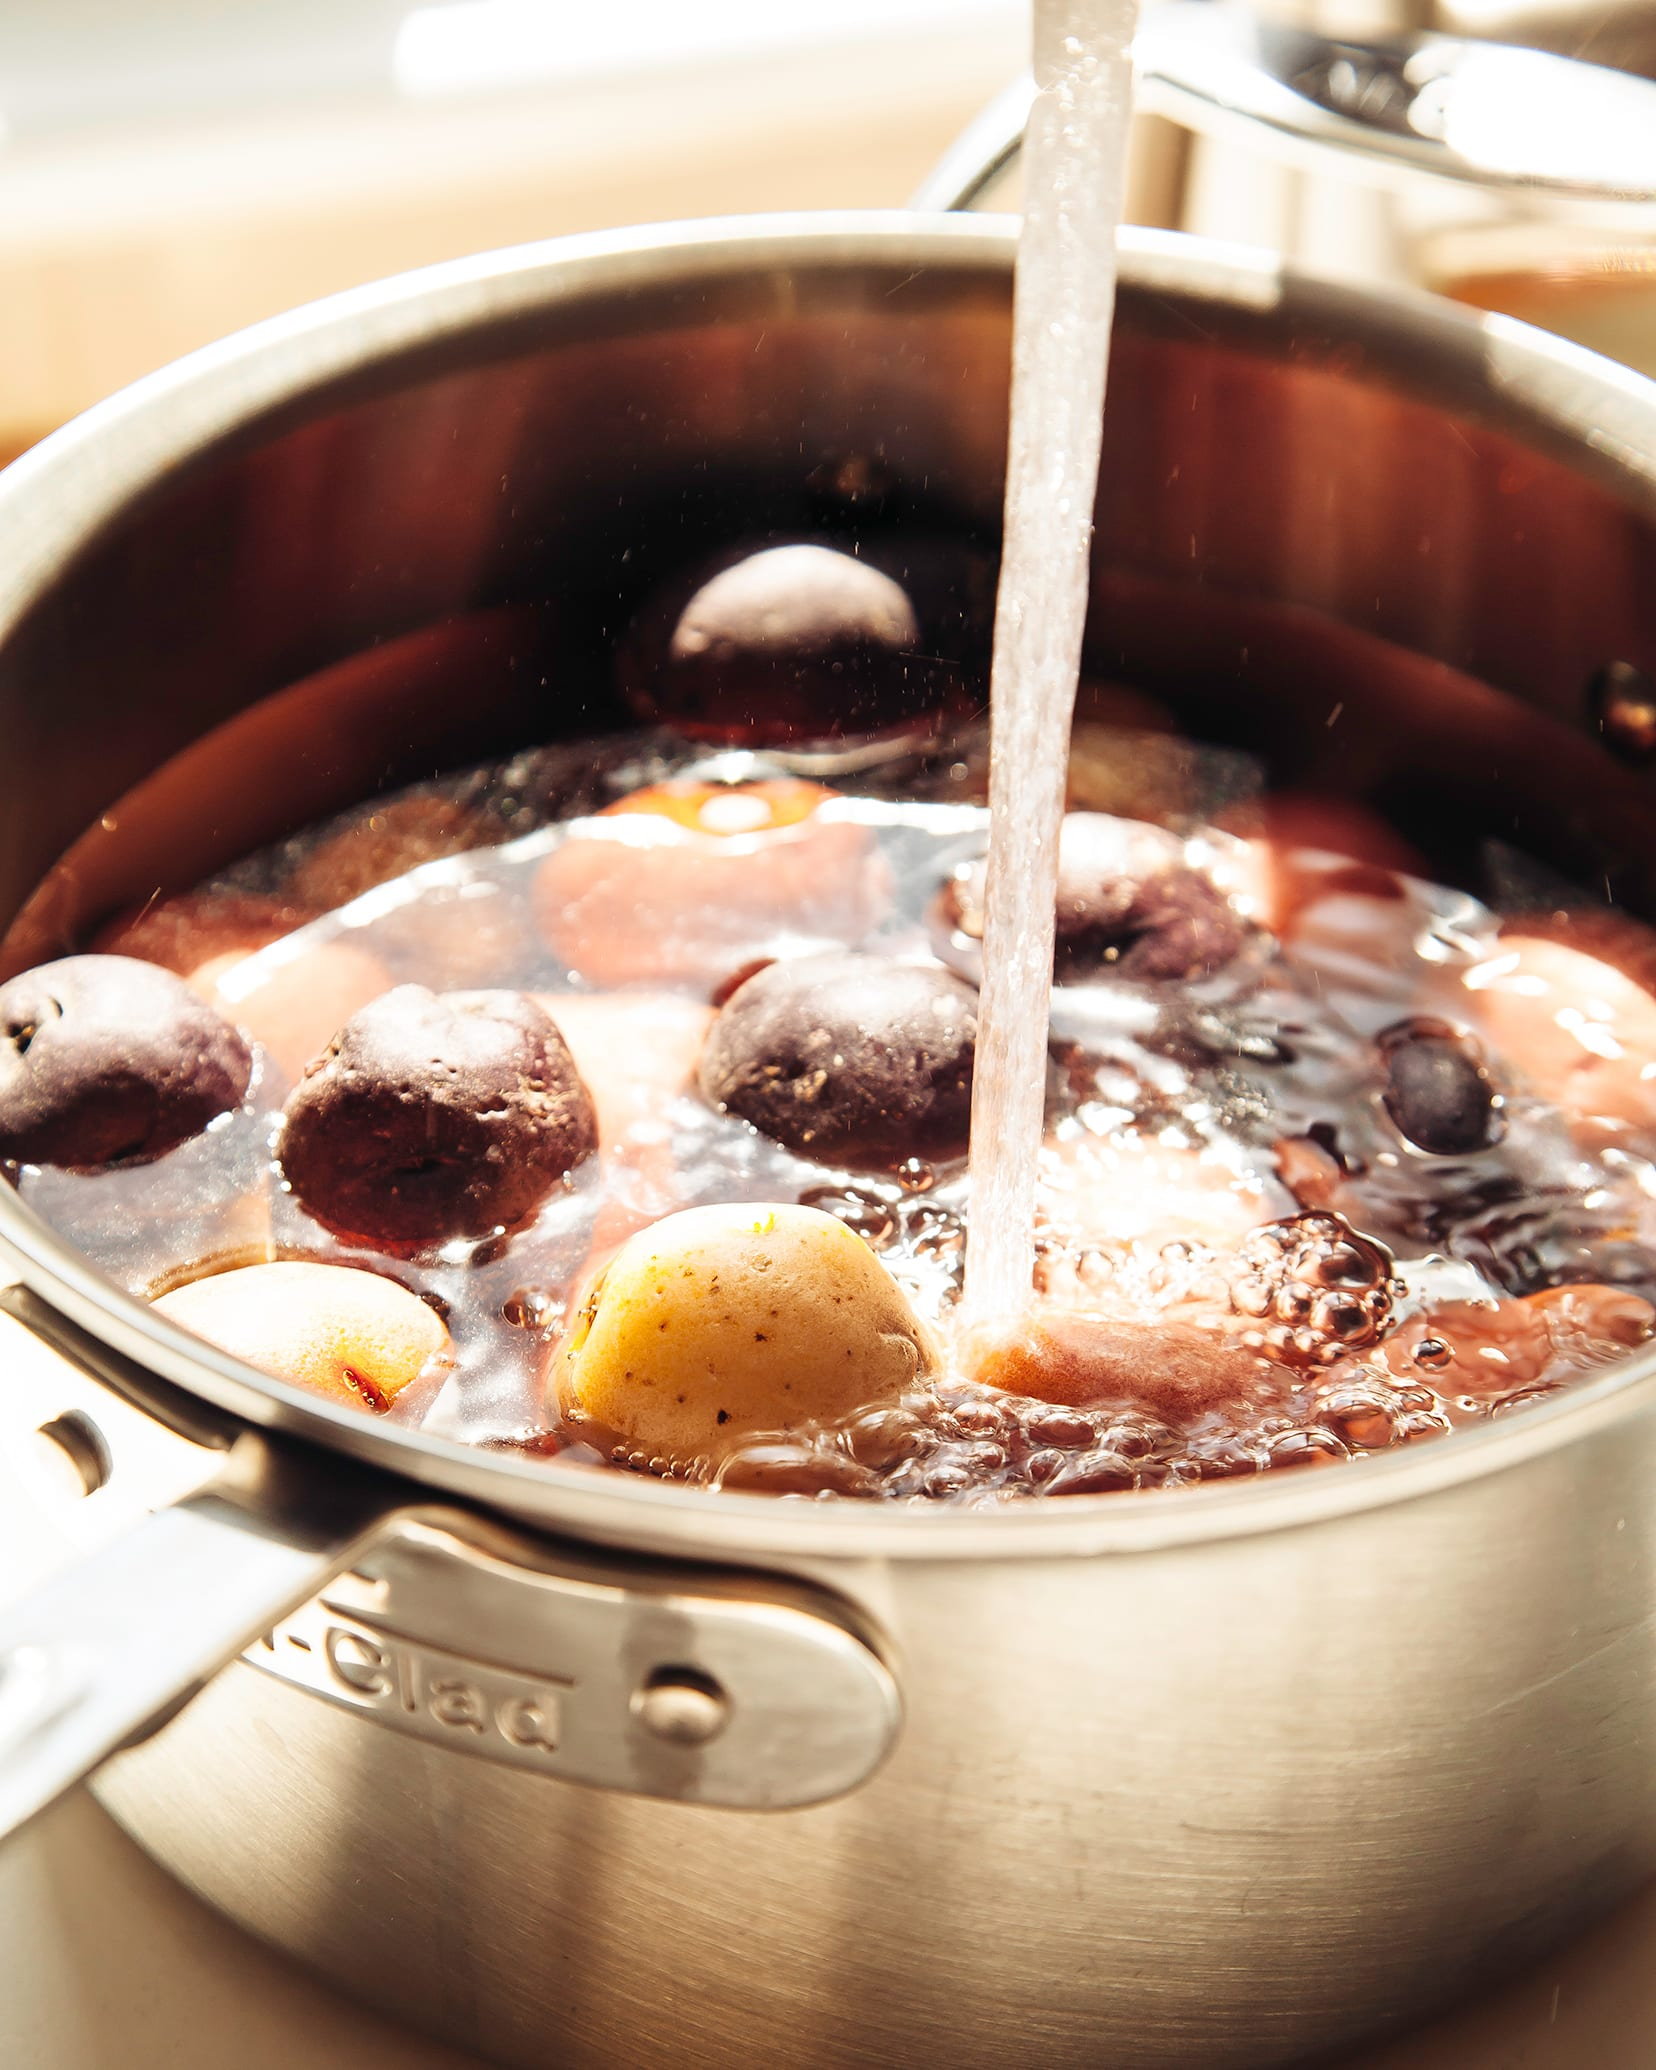 A 3/4 angle shot shows water pouring into a saucepan of baby potatoes in bright, direct sunlight.